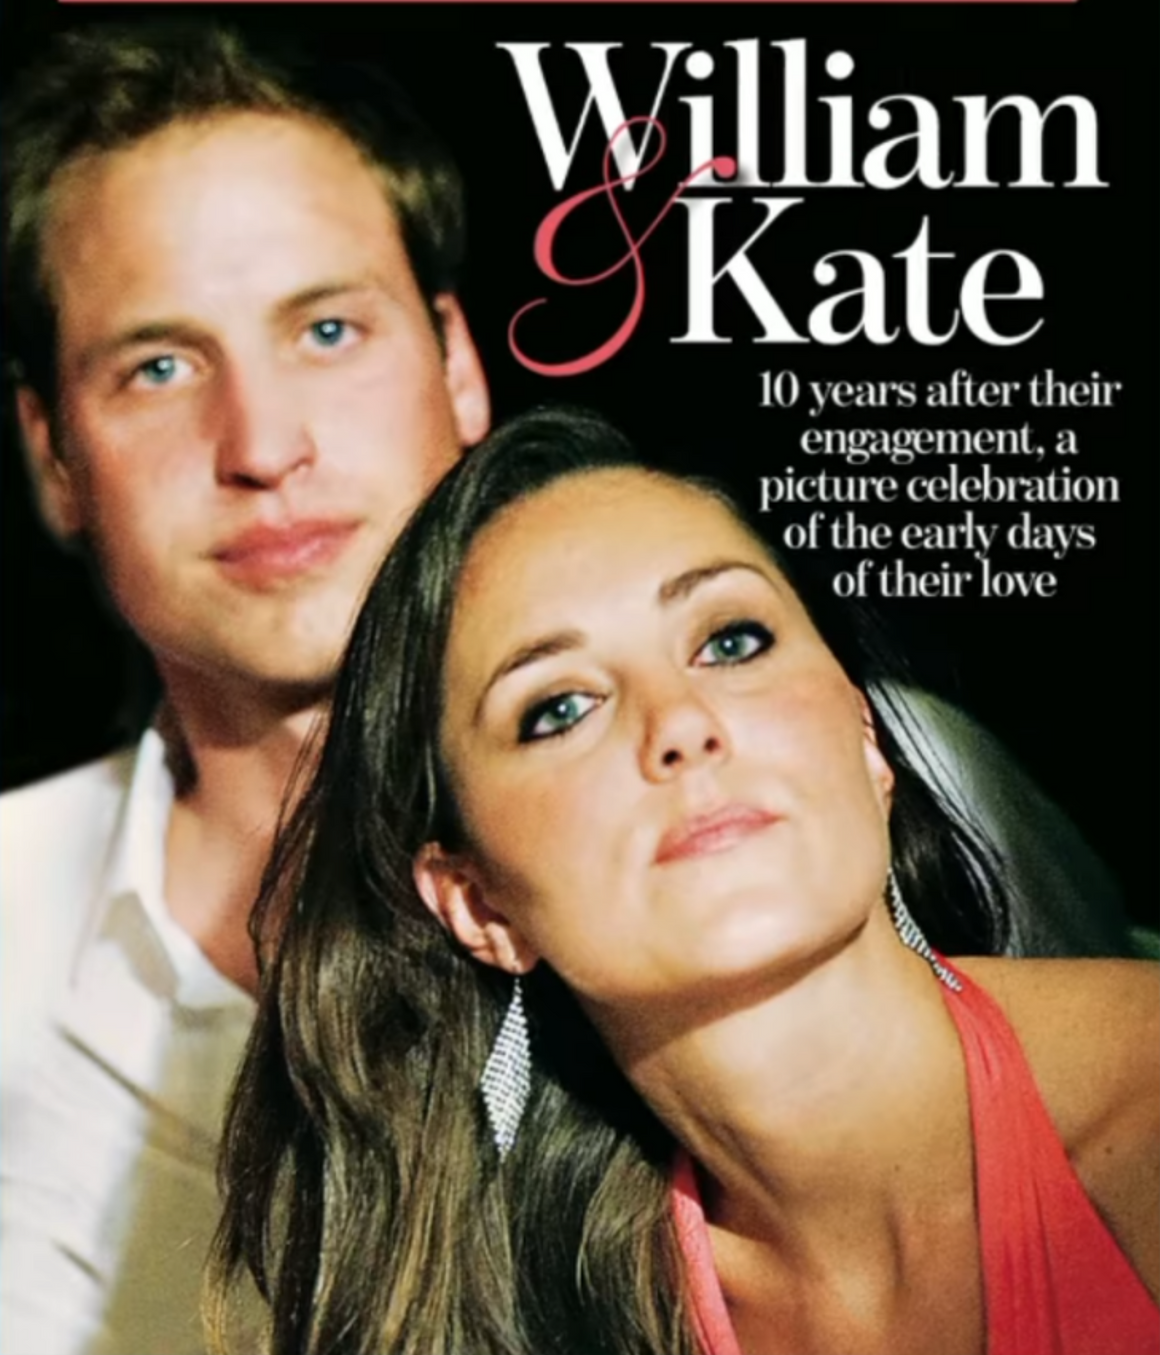 Prince William & Kate Middleton 24 Page Souvenir UK Mail on Sunday Magazine